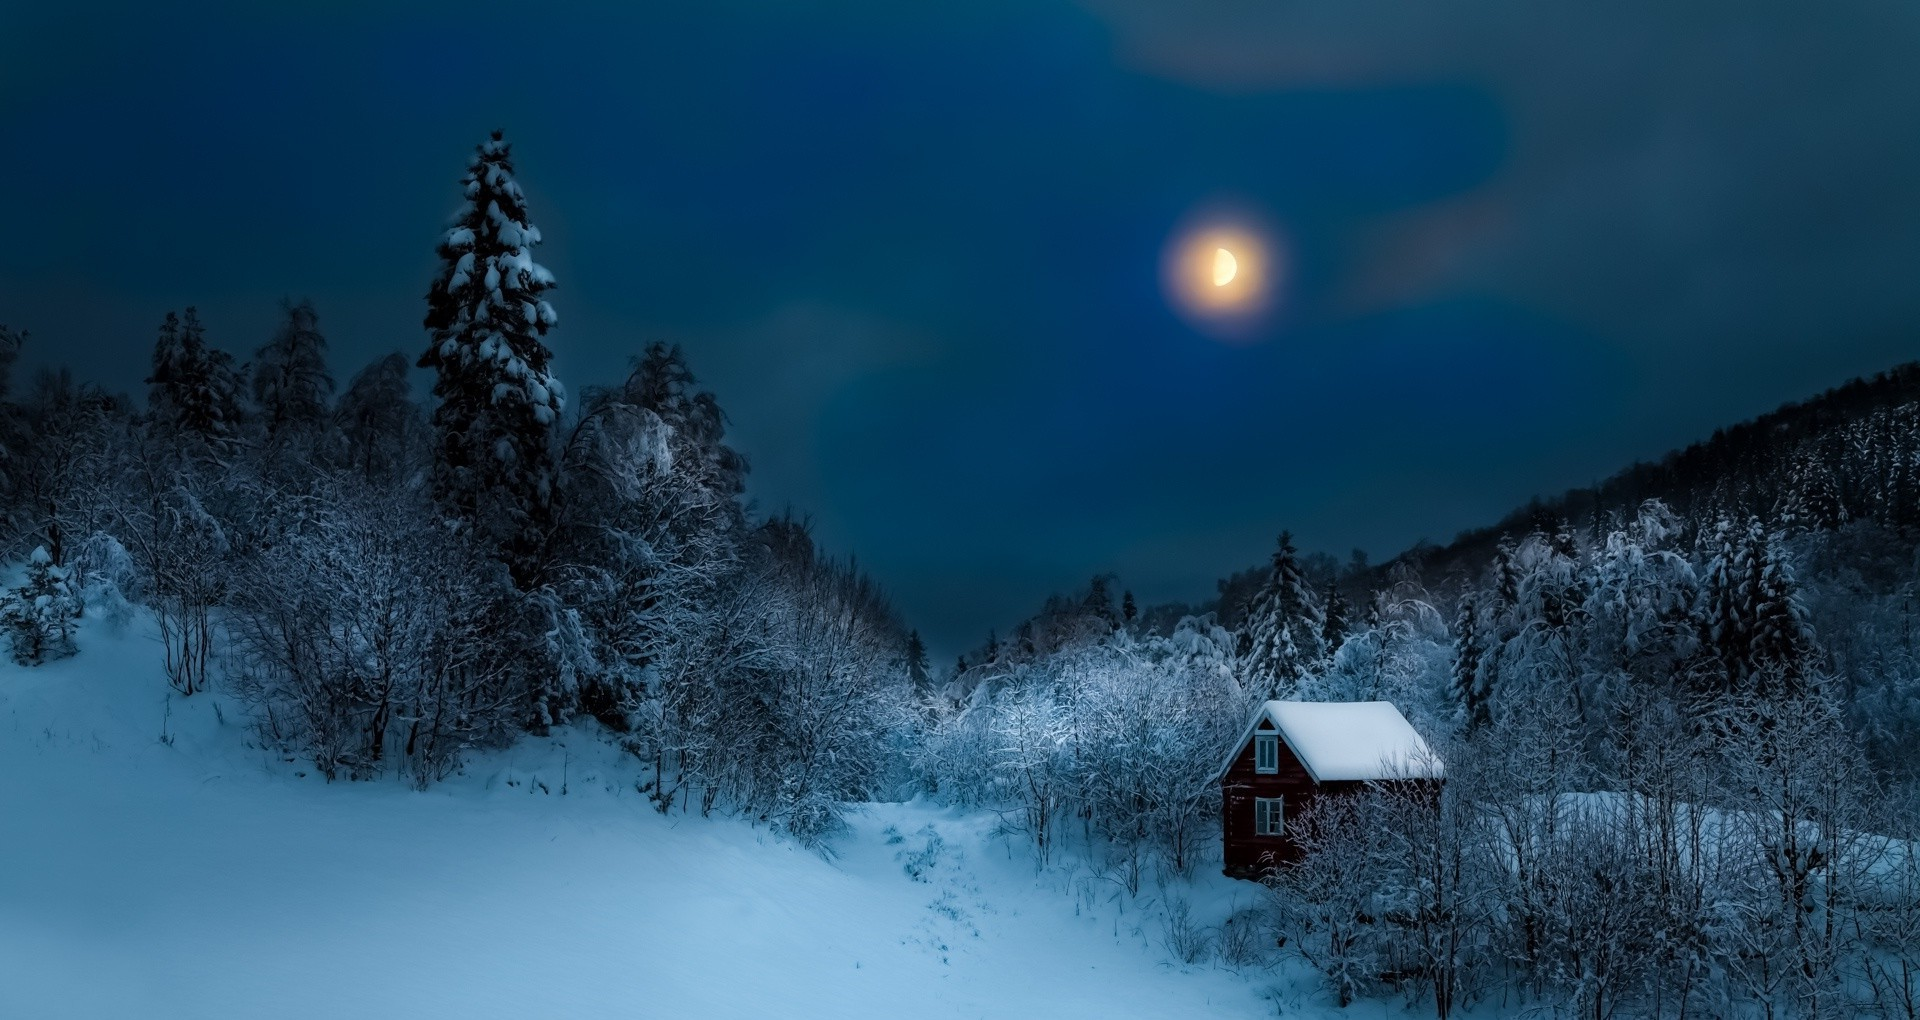 Ghost House Wallpaper Hd 3d Cottage Forest Hill Mist Nature Moon Winter